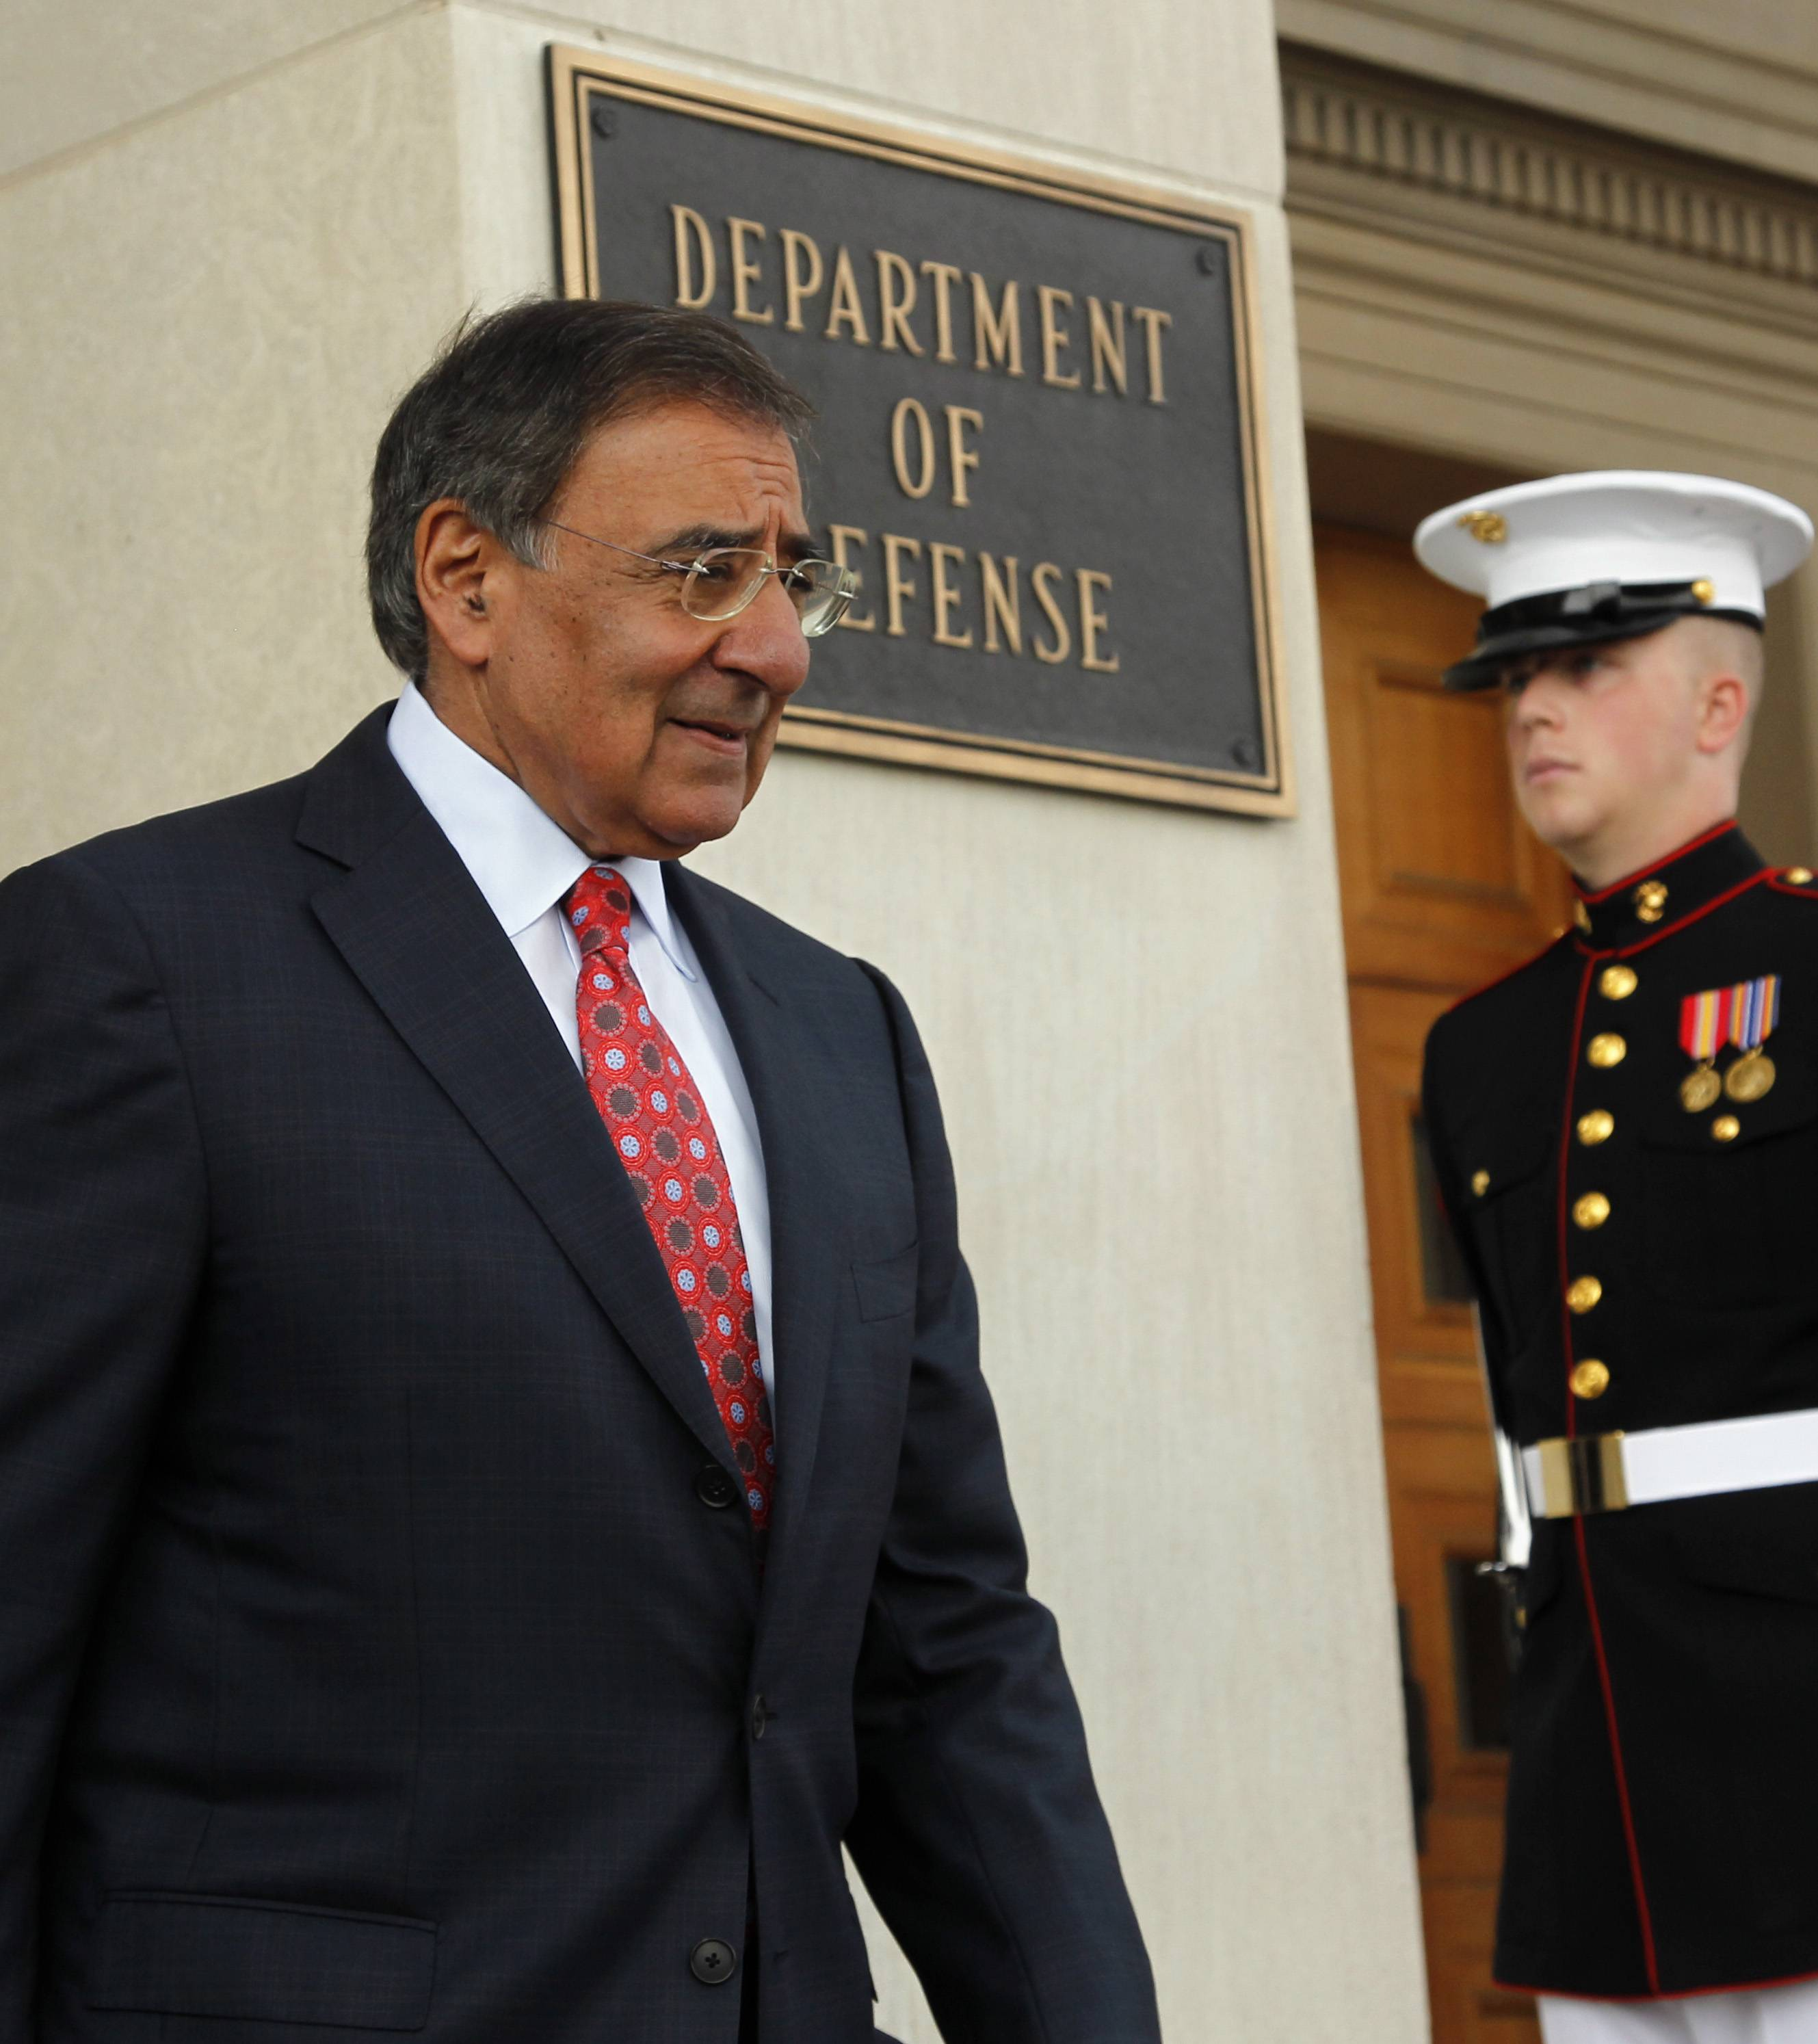 "Defense Secretary Leon Panetta joined President Obama and Adm. Mike Mullen, the joint chiefs of staff chairman, in signing a notice and sending it to Congress certifying that military readiness would not be hurt by repealing the 17-year-old ""don't ask, don't tell"" policy."